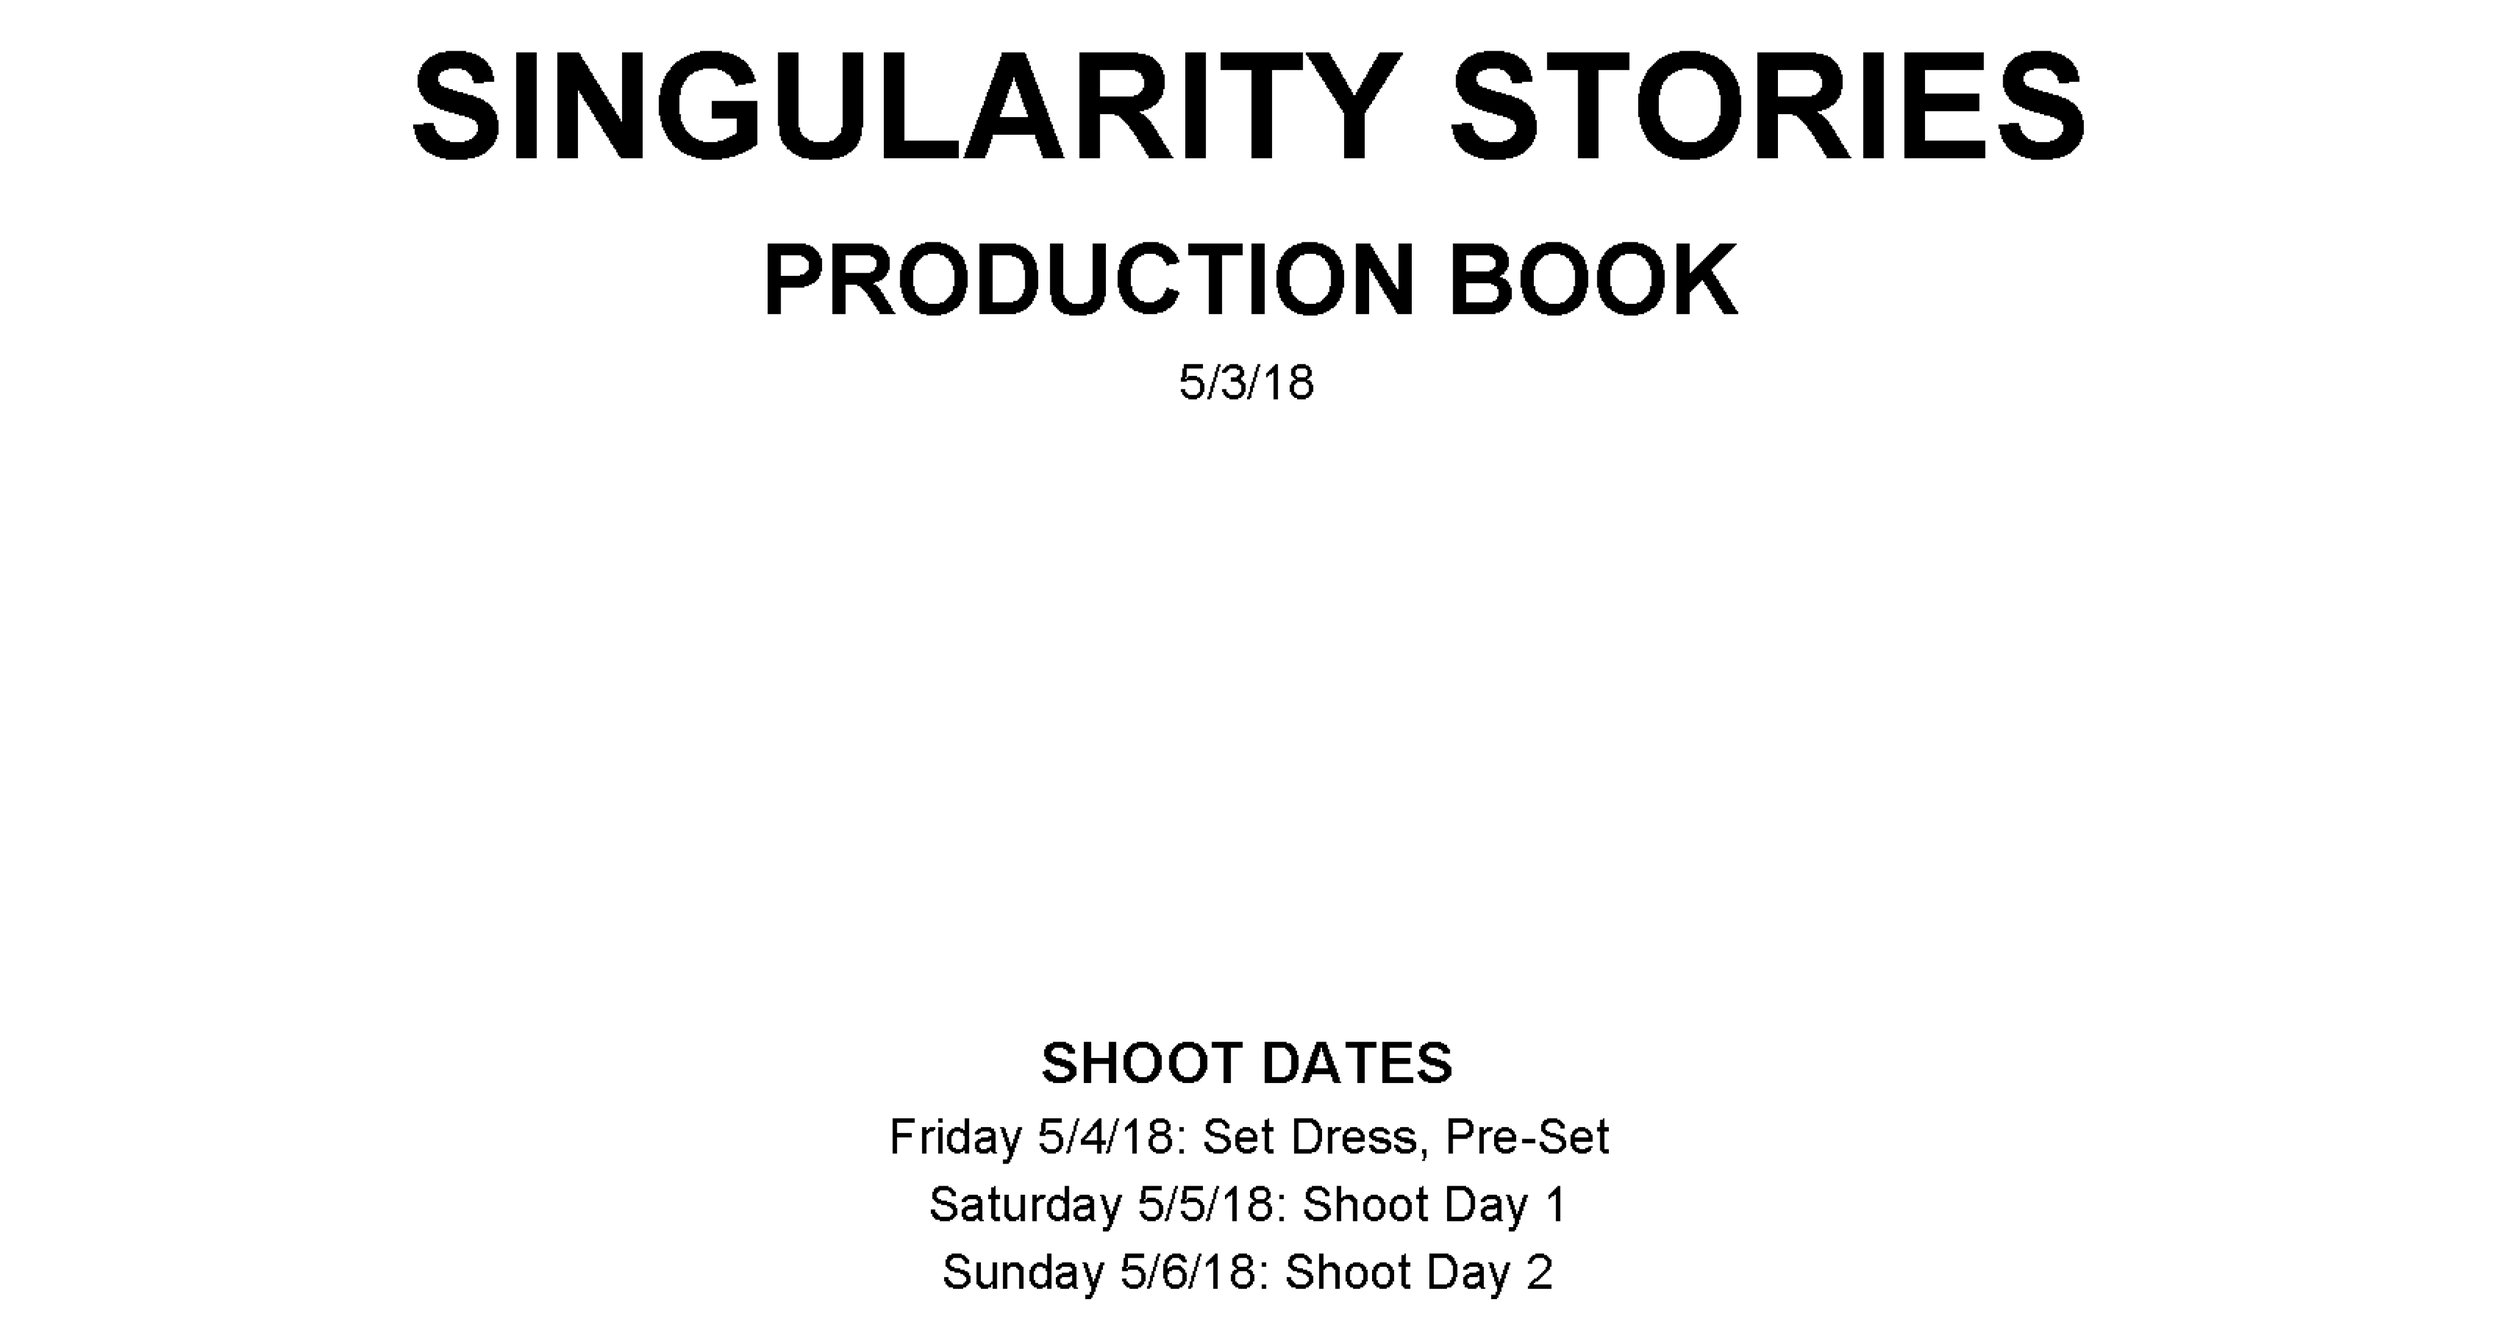 PRODUCTION BOOK - A heavily redacted production book, including contact info, locations and maps, and a general daily schedule. This is hopefully all the info that cast and crew would need heading into production days.